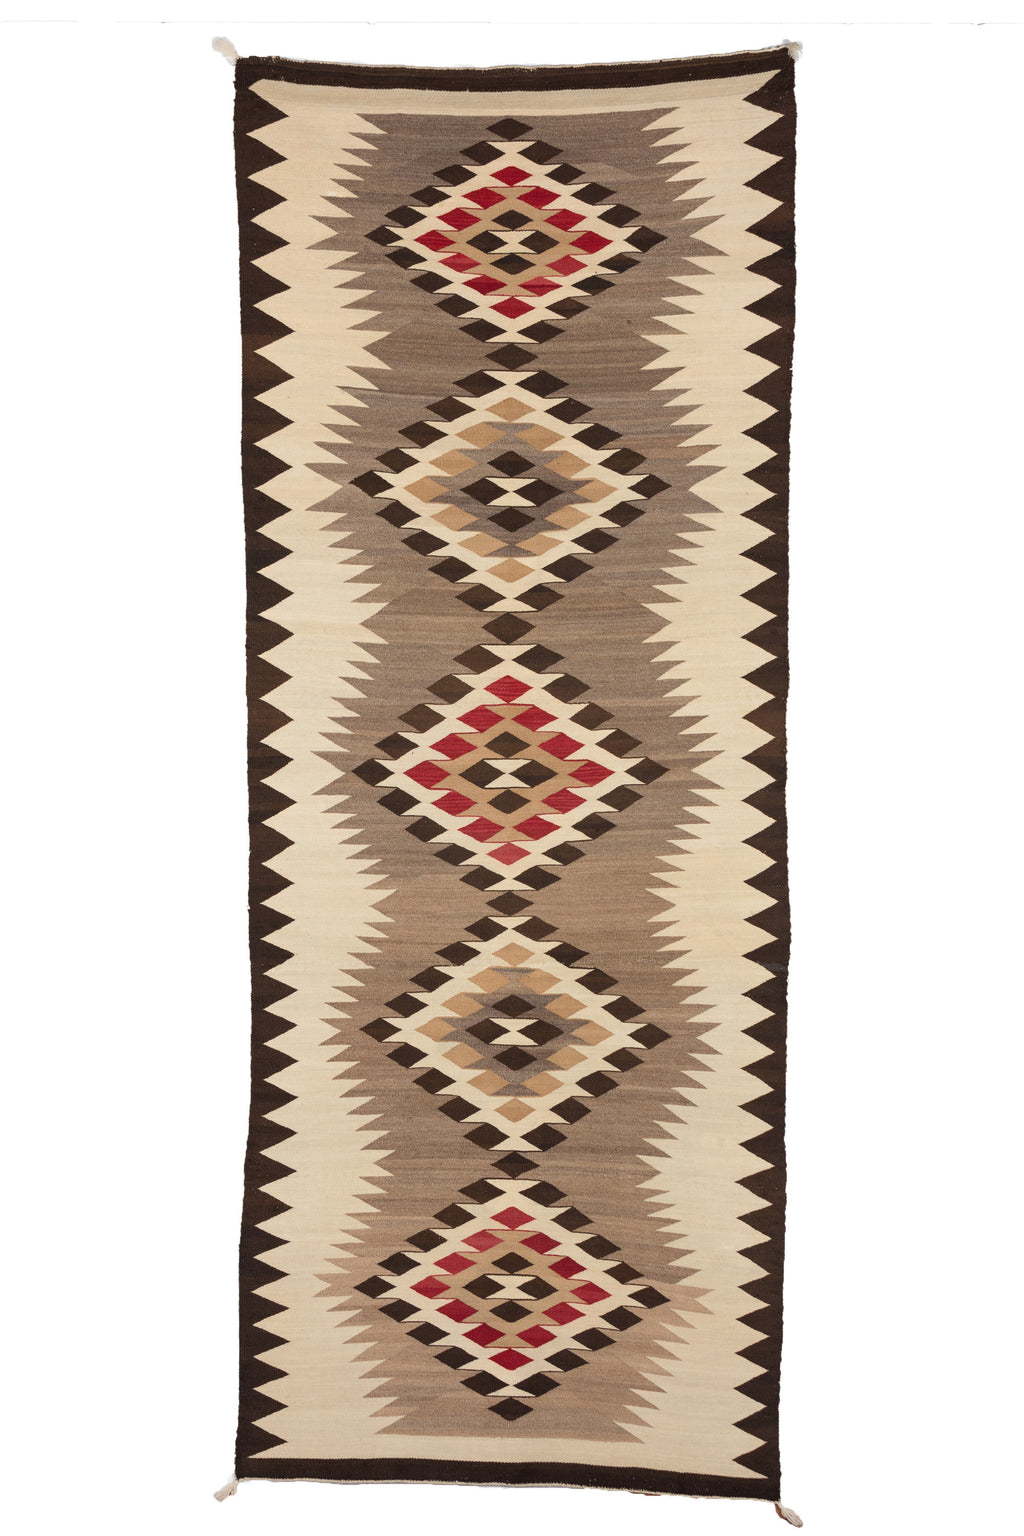 Chinle Navajo Rug : Historic Runner : PC 47 : 43″ x 109″ - Getzwiller's Nizhoni Ranch Gallery